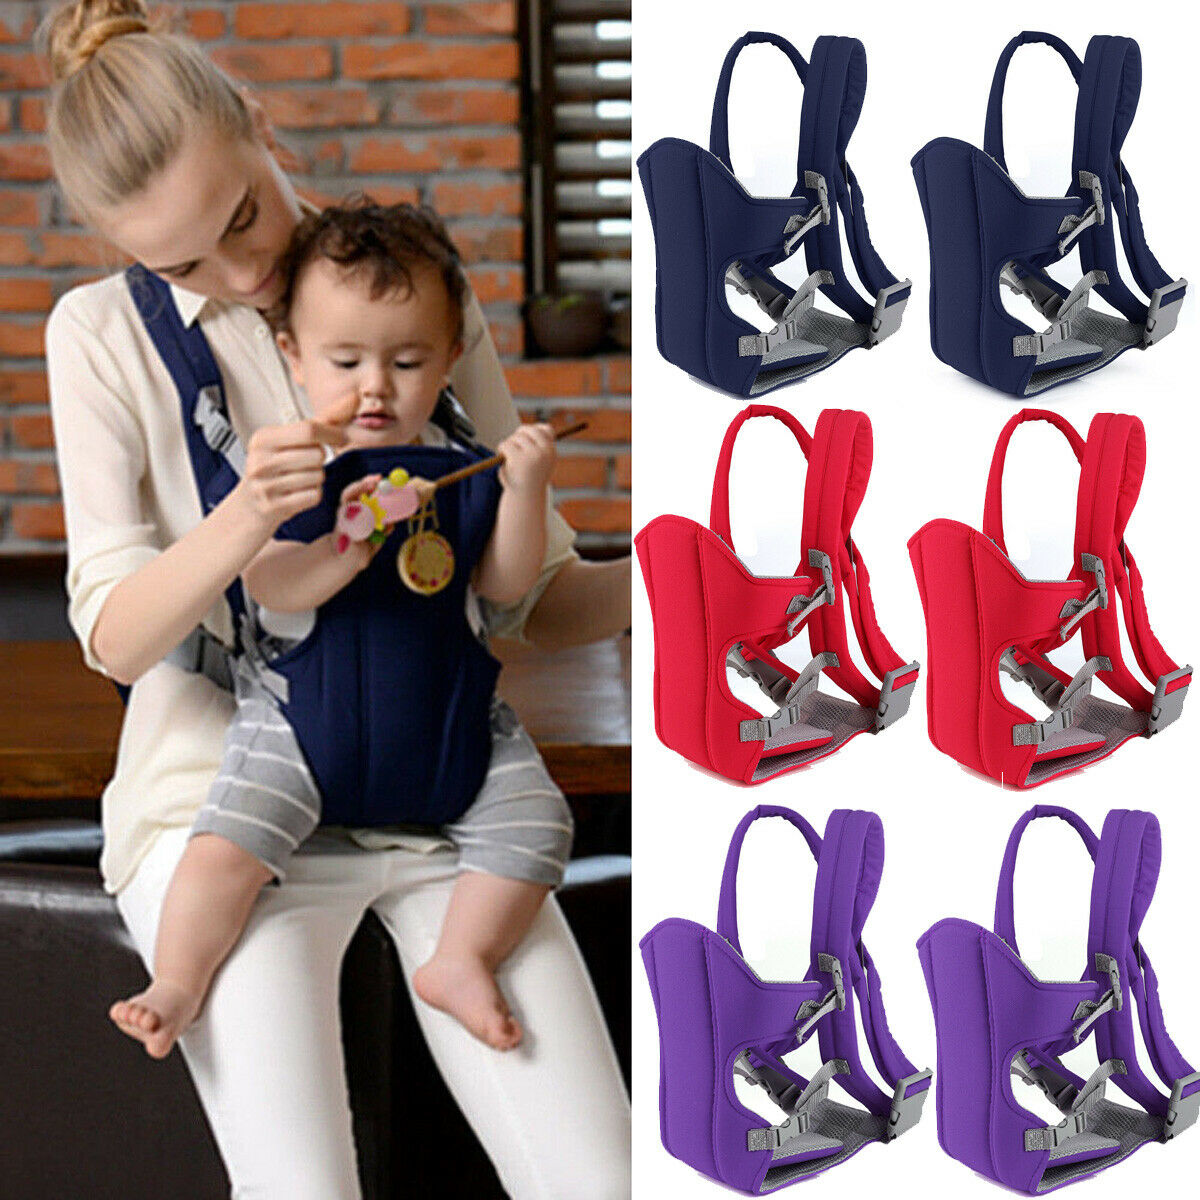 New Hot Newborn Infant Baby Carrier Ergonomic Adjustable Breathable Wrap Sling Backpack Baby Care Artifact